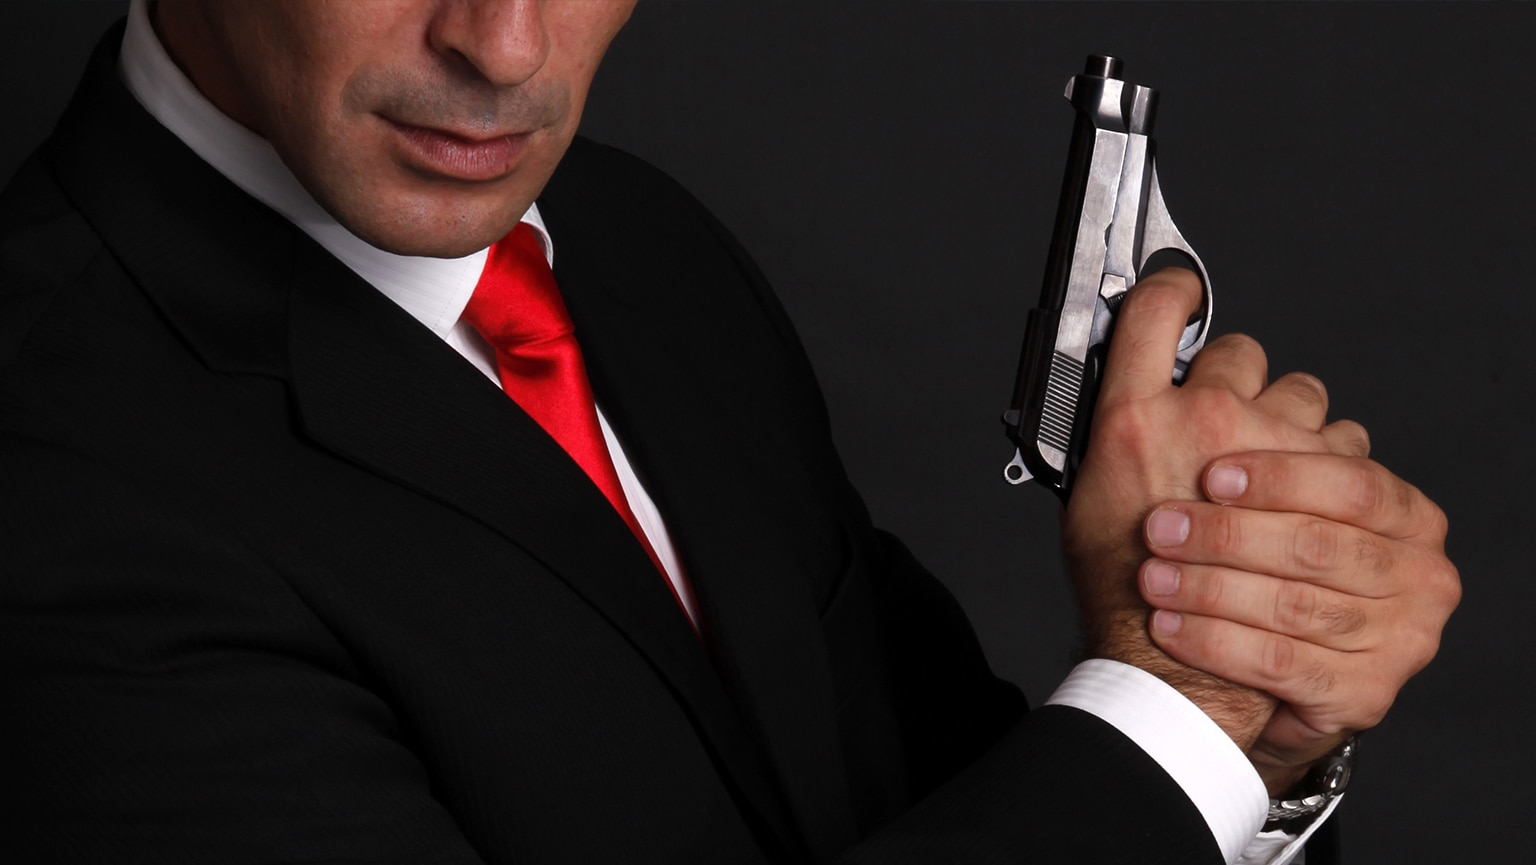 James Bond—A Dangerous Protector